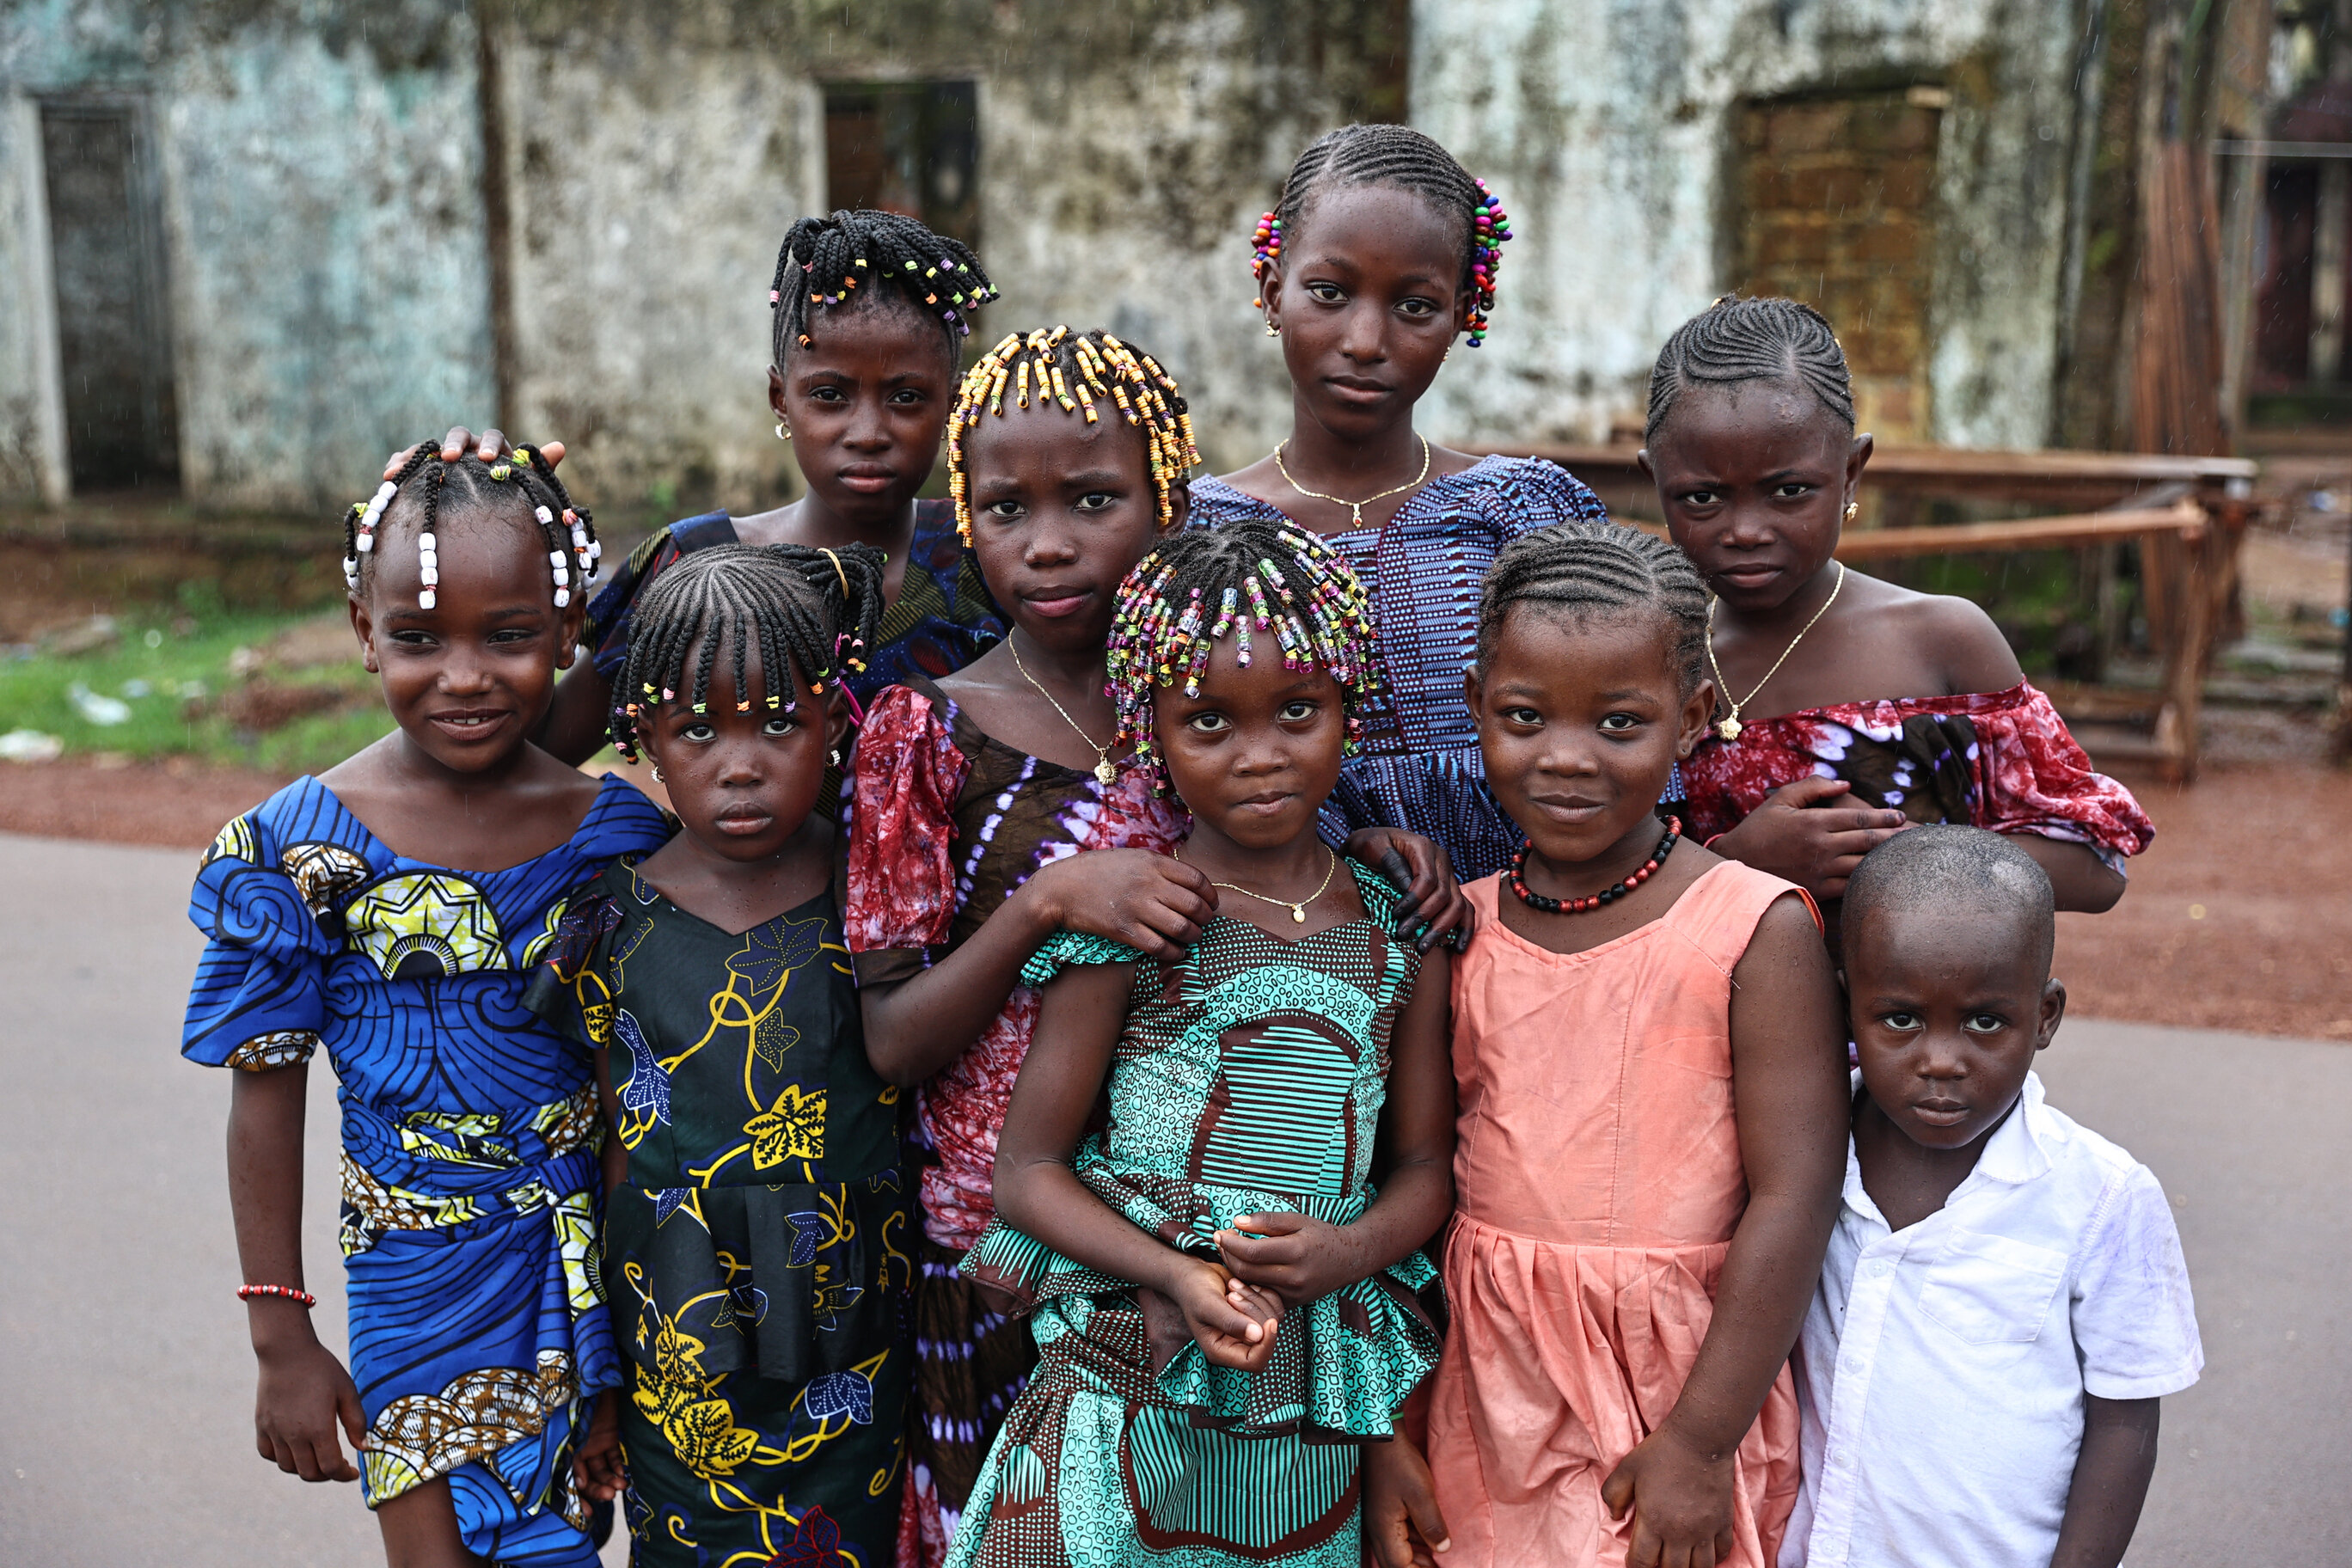 Colorful braids put smiles on kids' faces in Guinea